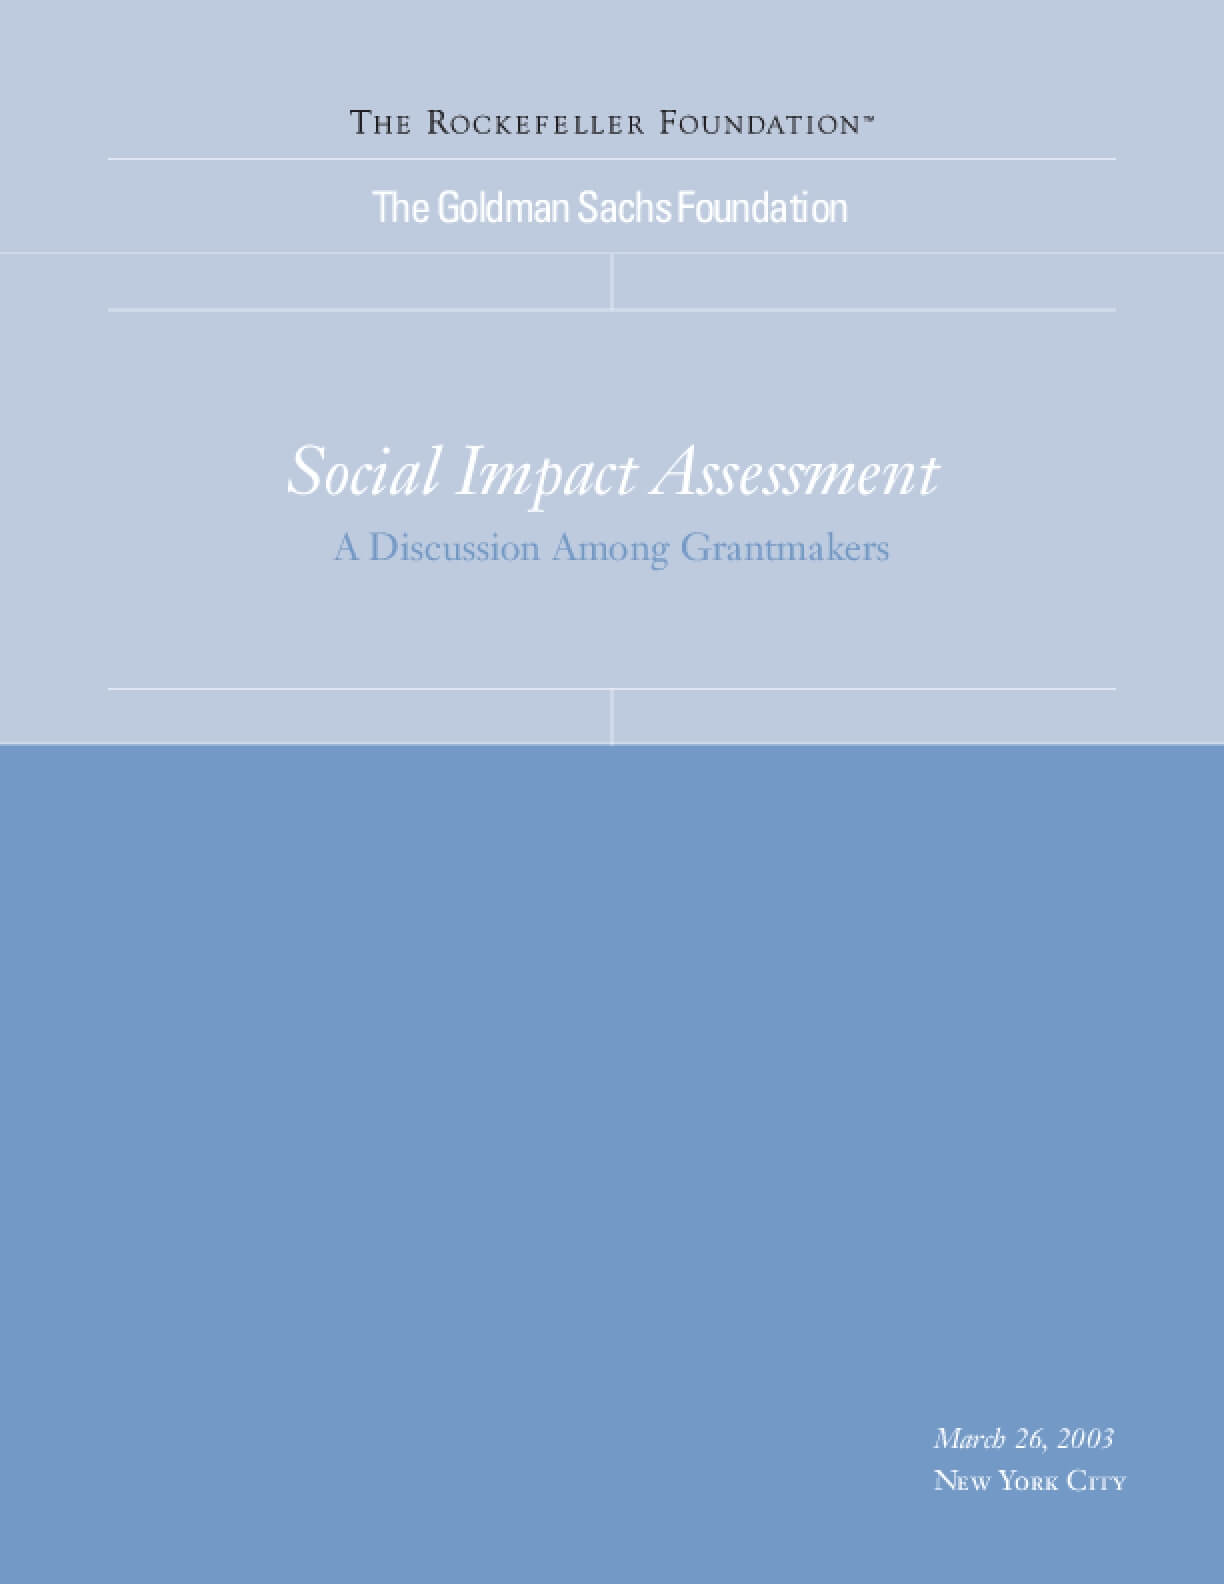 Social Impact Assessment: A Discussion Among Grantmakers